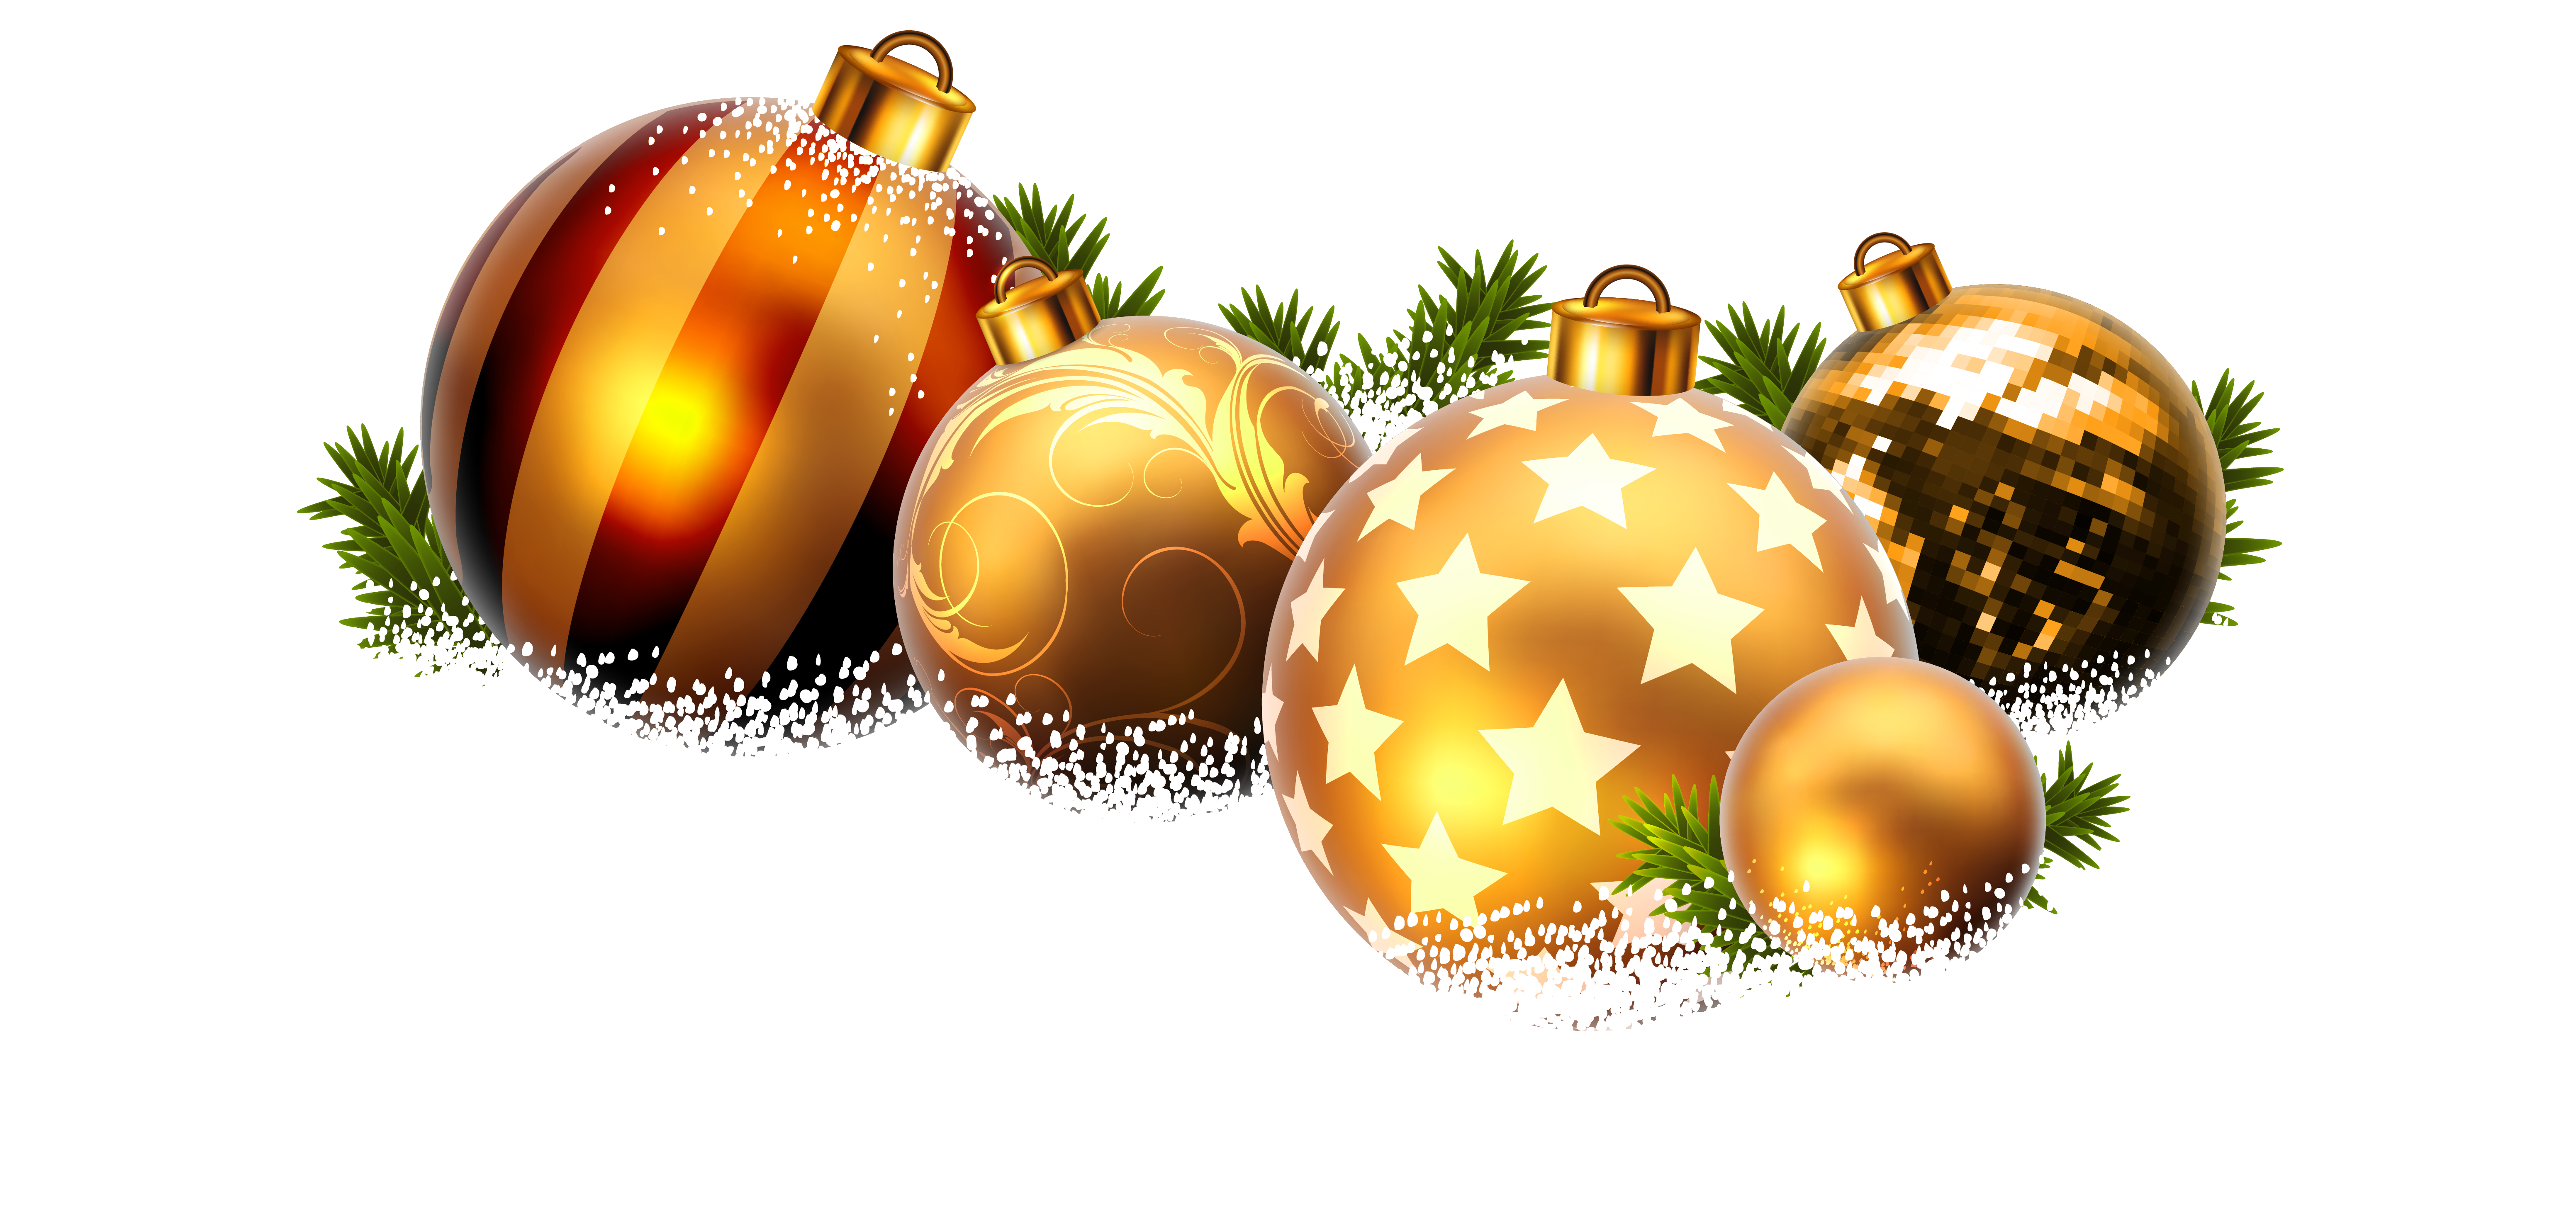 Christmas snow png. Balls and clipart image